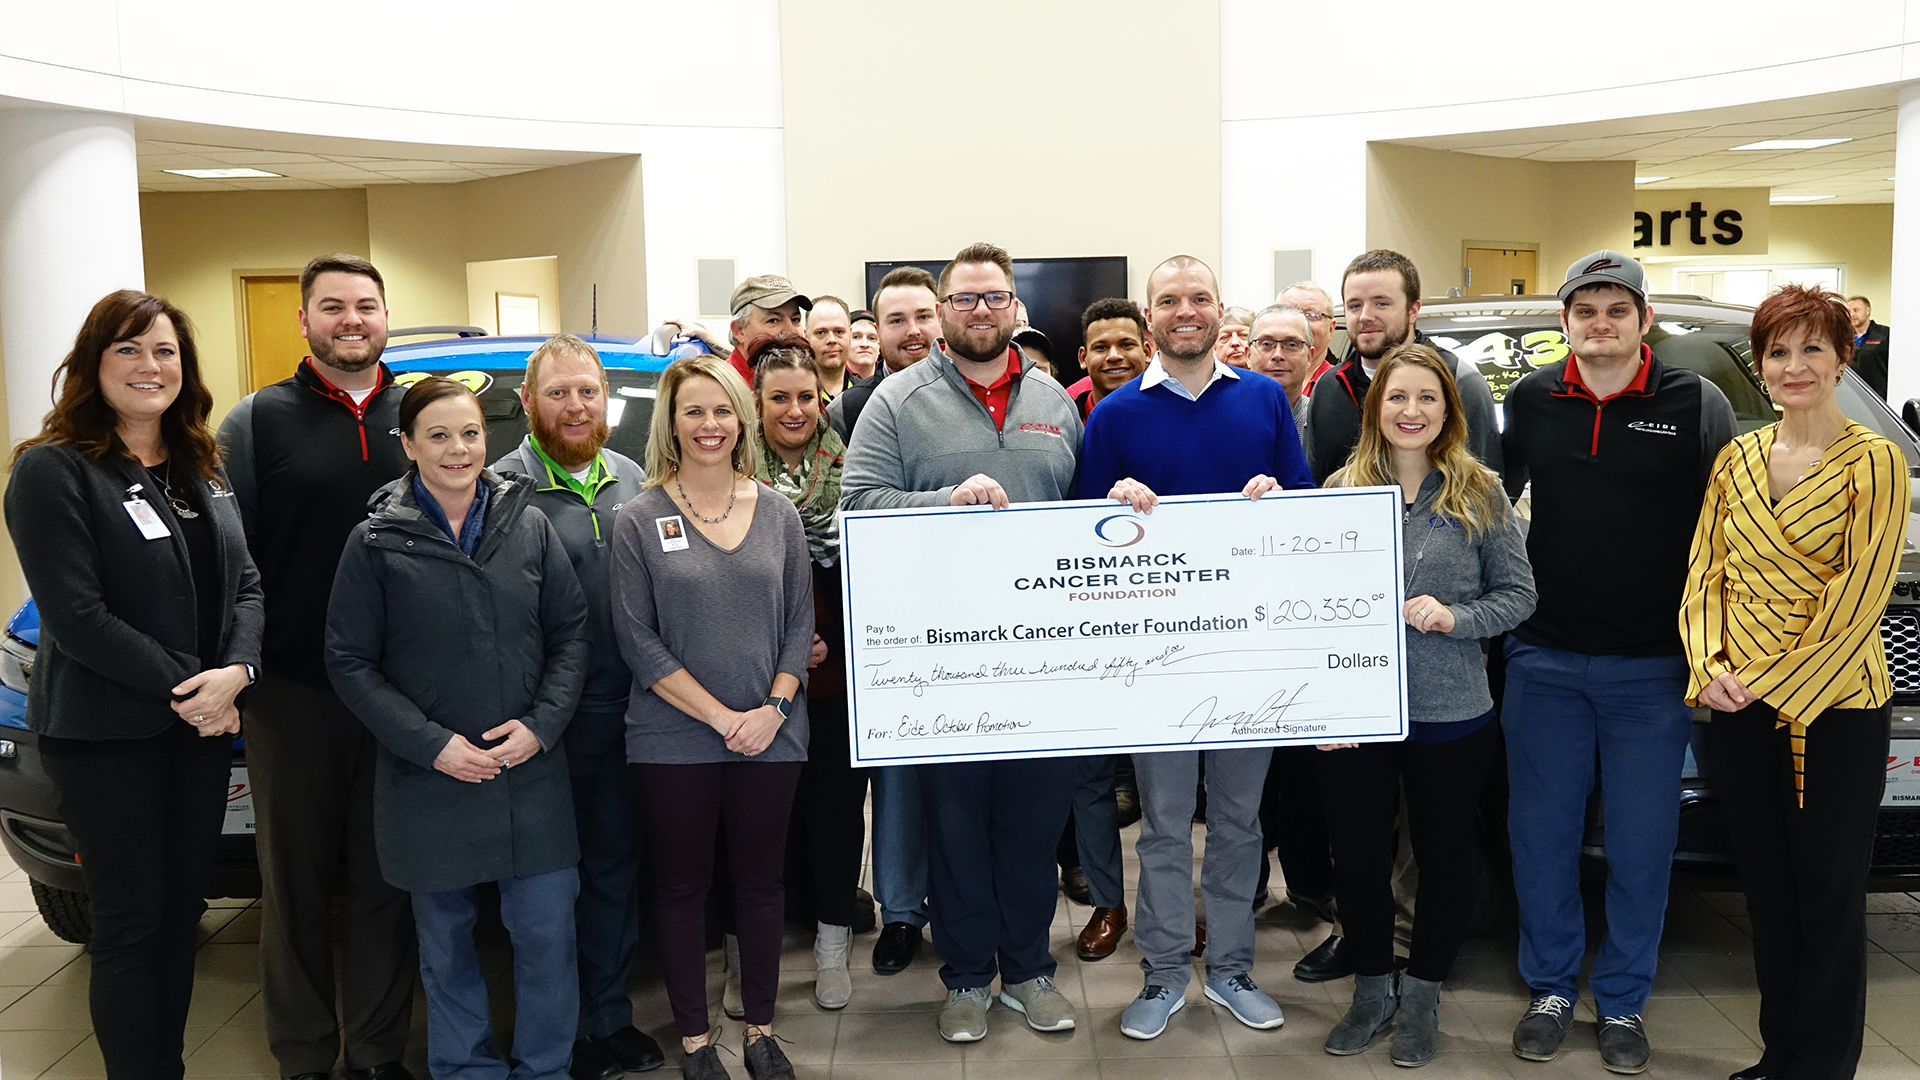 the Eide Chrysler team with a donation to the Bismarck Cancer Center